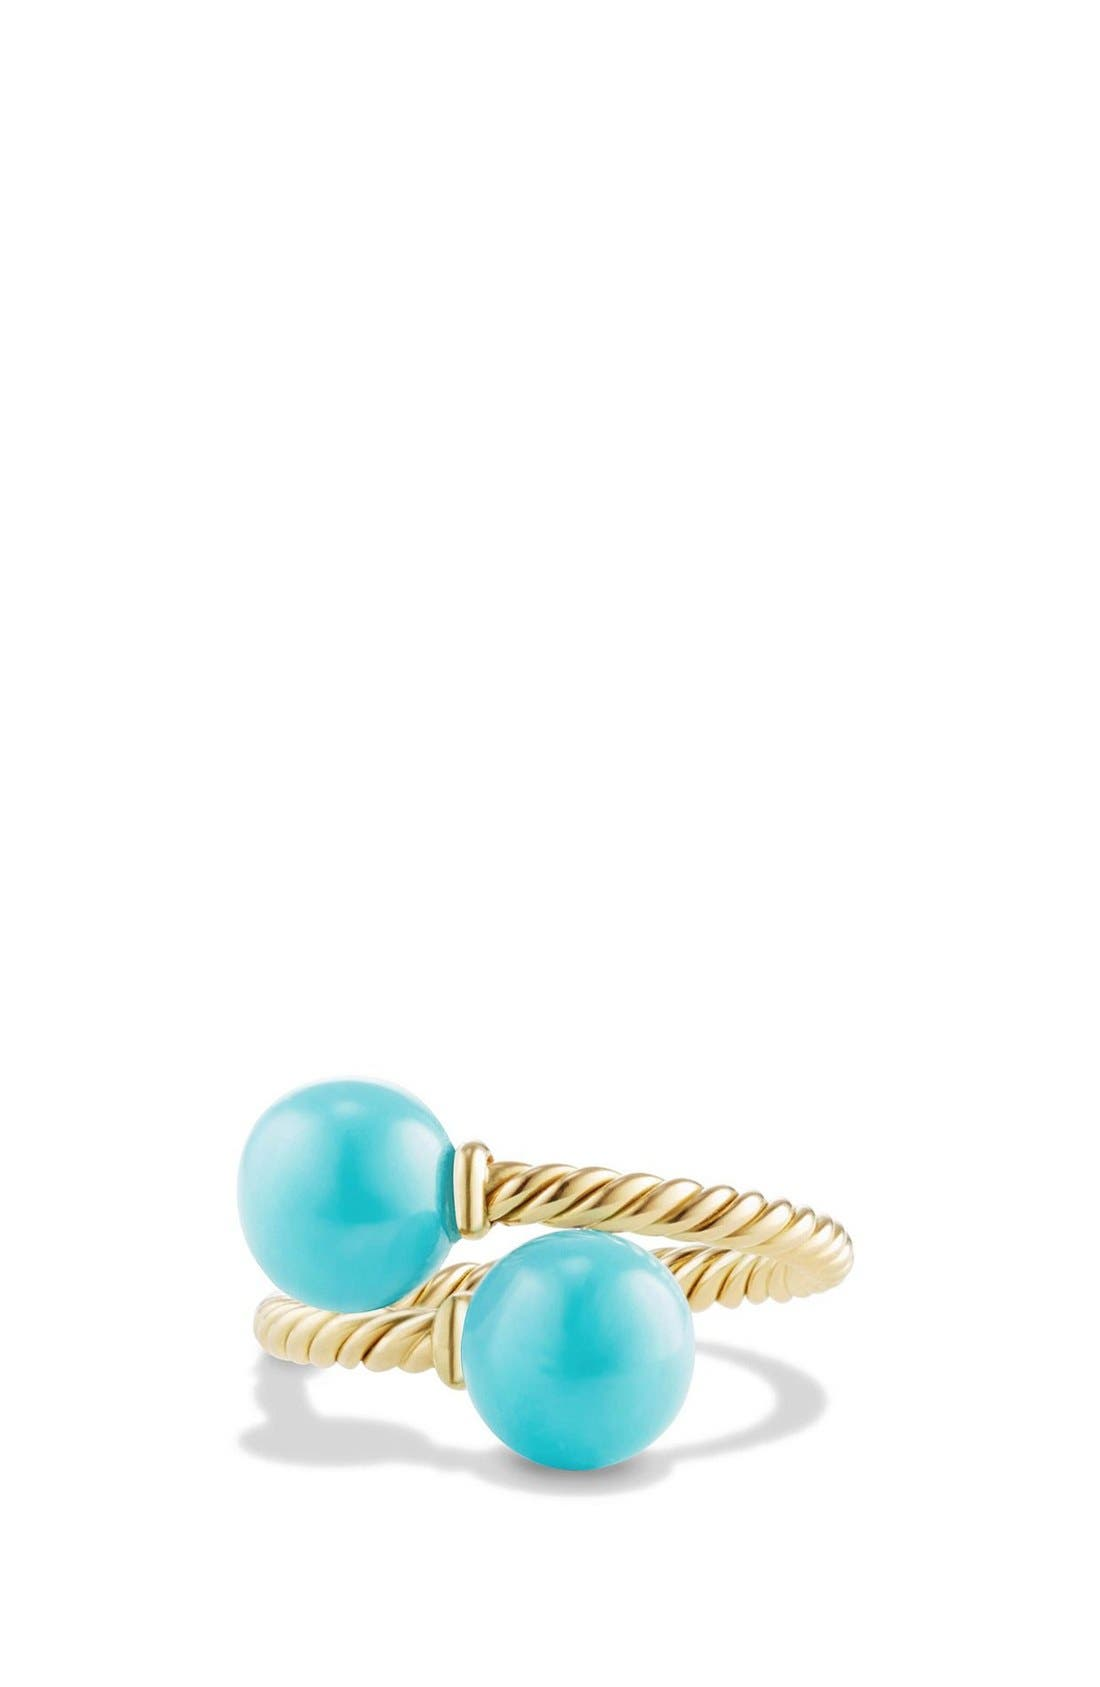 'Solari' Bead Ring with Turquoise in 18K Gold,                             Main thumbnail 1, color,                             Turquoise